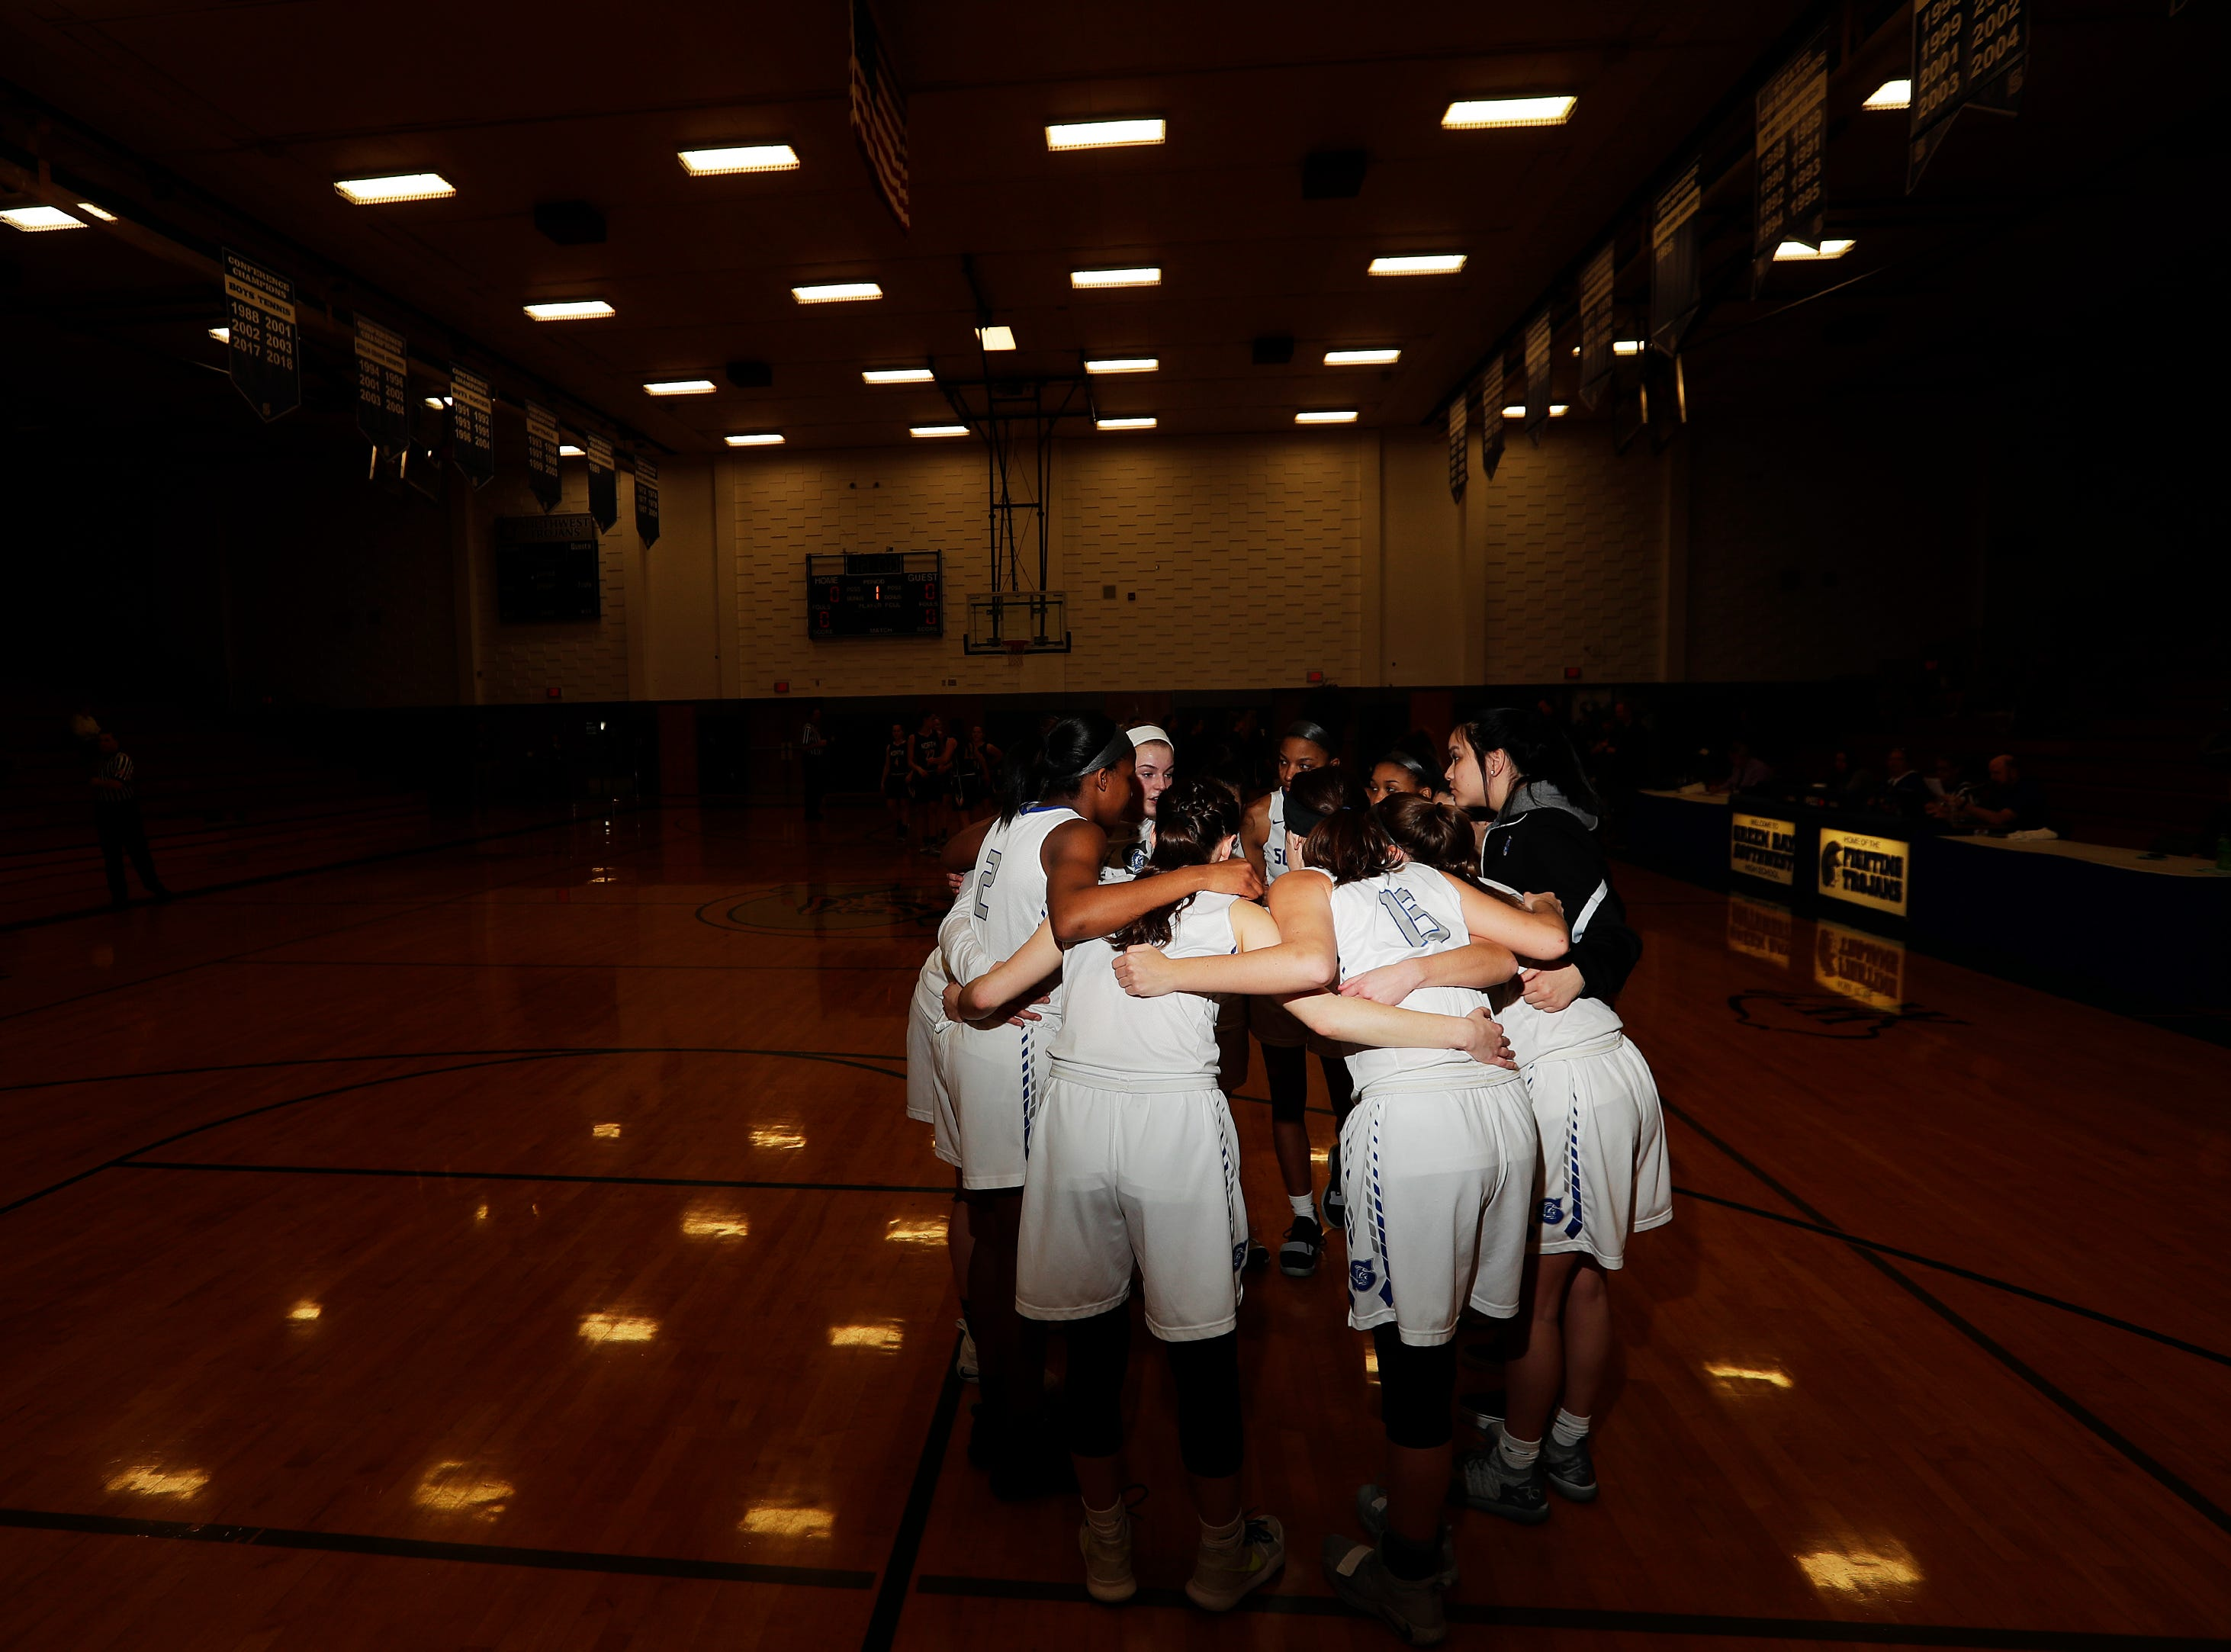 Green Bay Southwest players huddle before a girls basketball game at Southwest High School on Tuesday, February 5, 2019 in Green Bay, Wis.